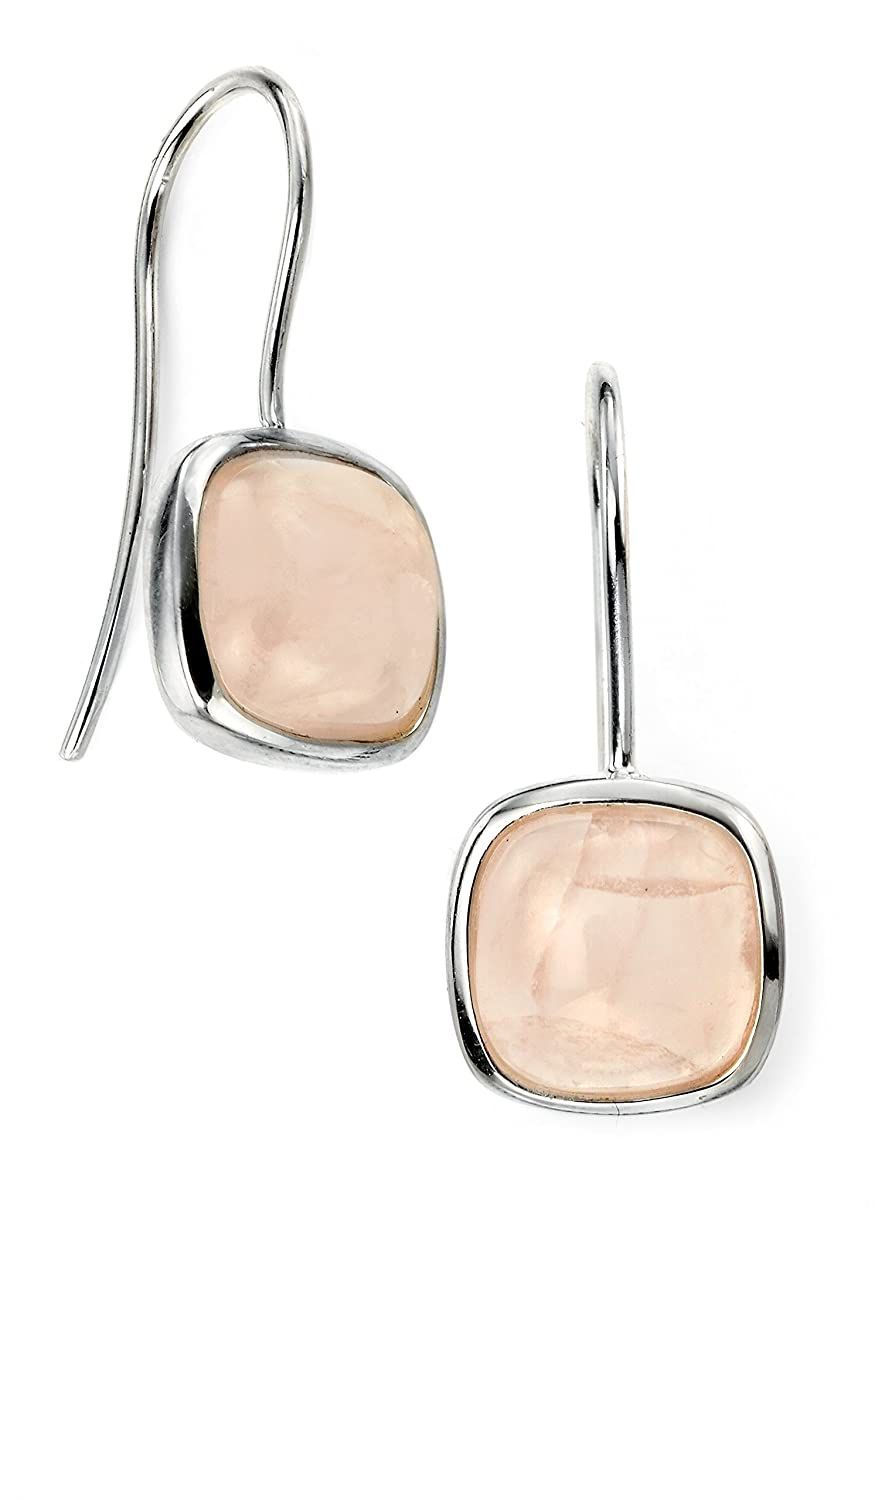 Elements Silver Women's 925 Sterling Silver Rose Gold Square Cabochon Moonstone Earrings xlk7P1sr